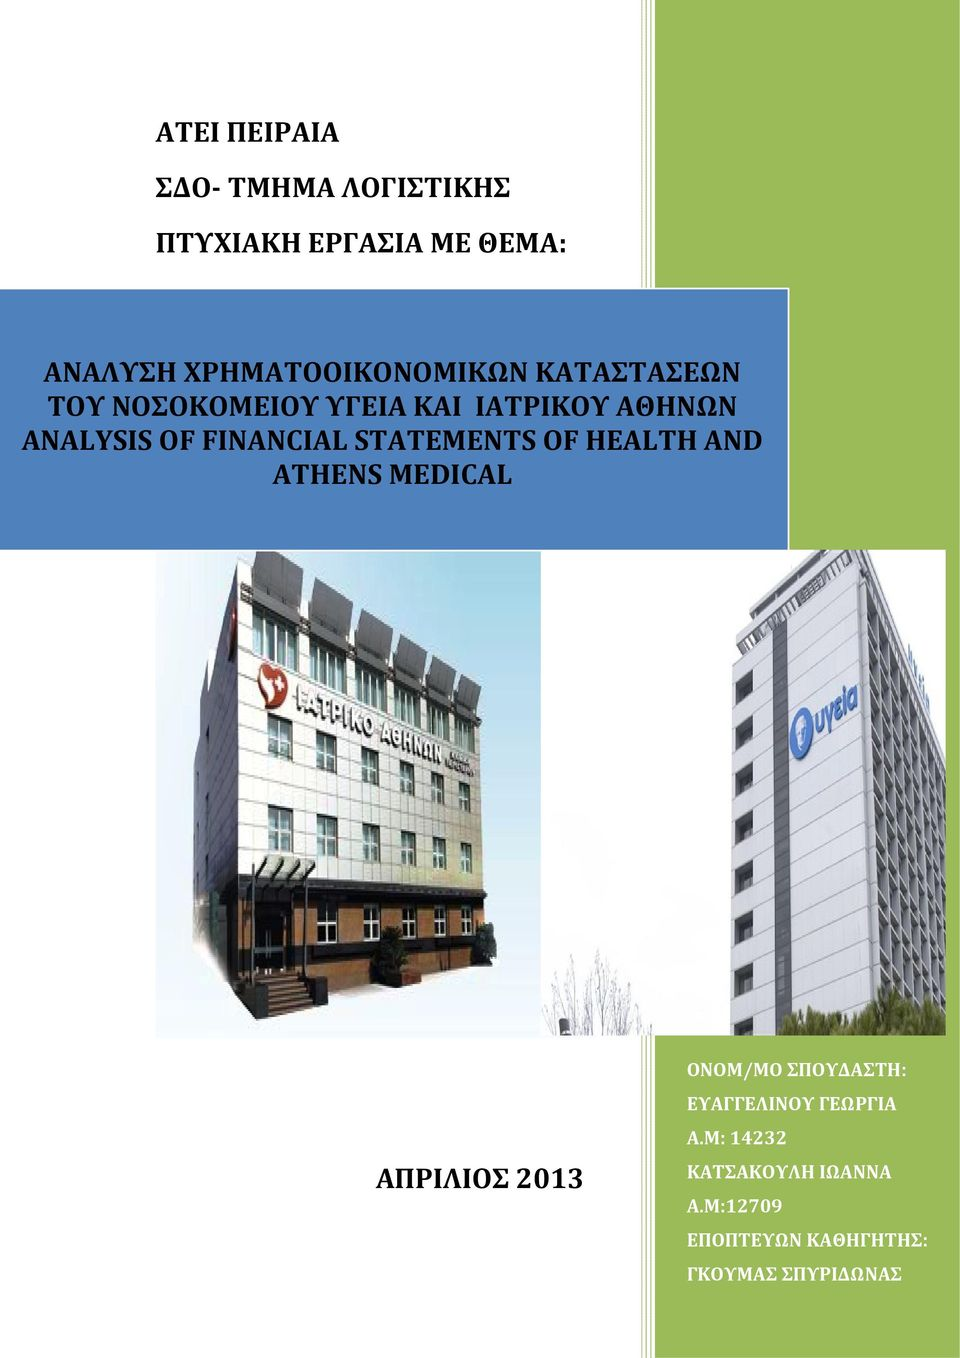 OF FINANCIAL STATEMENTS OF HEALTH AND ATHENS MEDICAL ΑΠΡΙΛΙΟΣ 2013 ΟΝΟΜ/ΜΟ